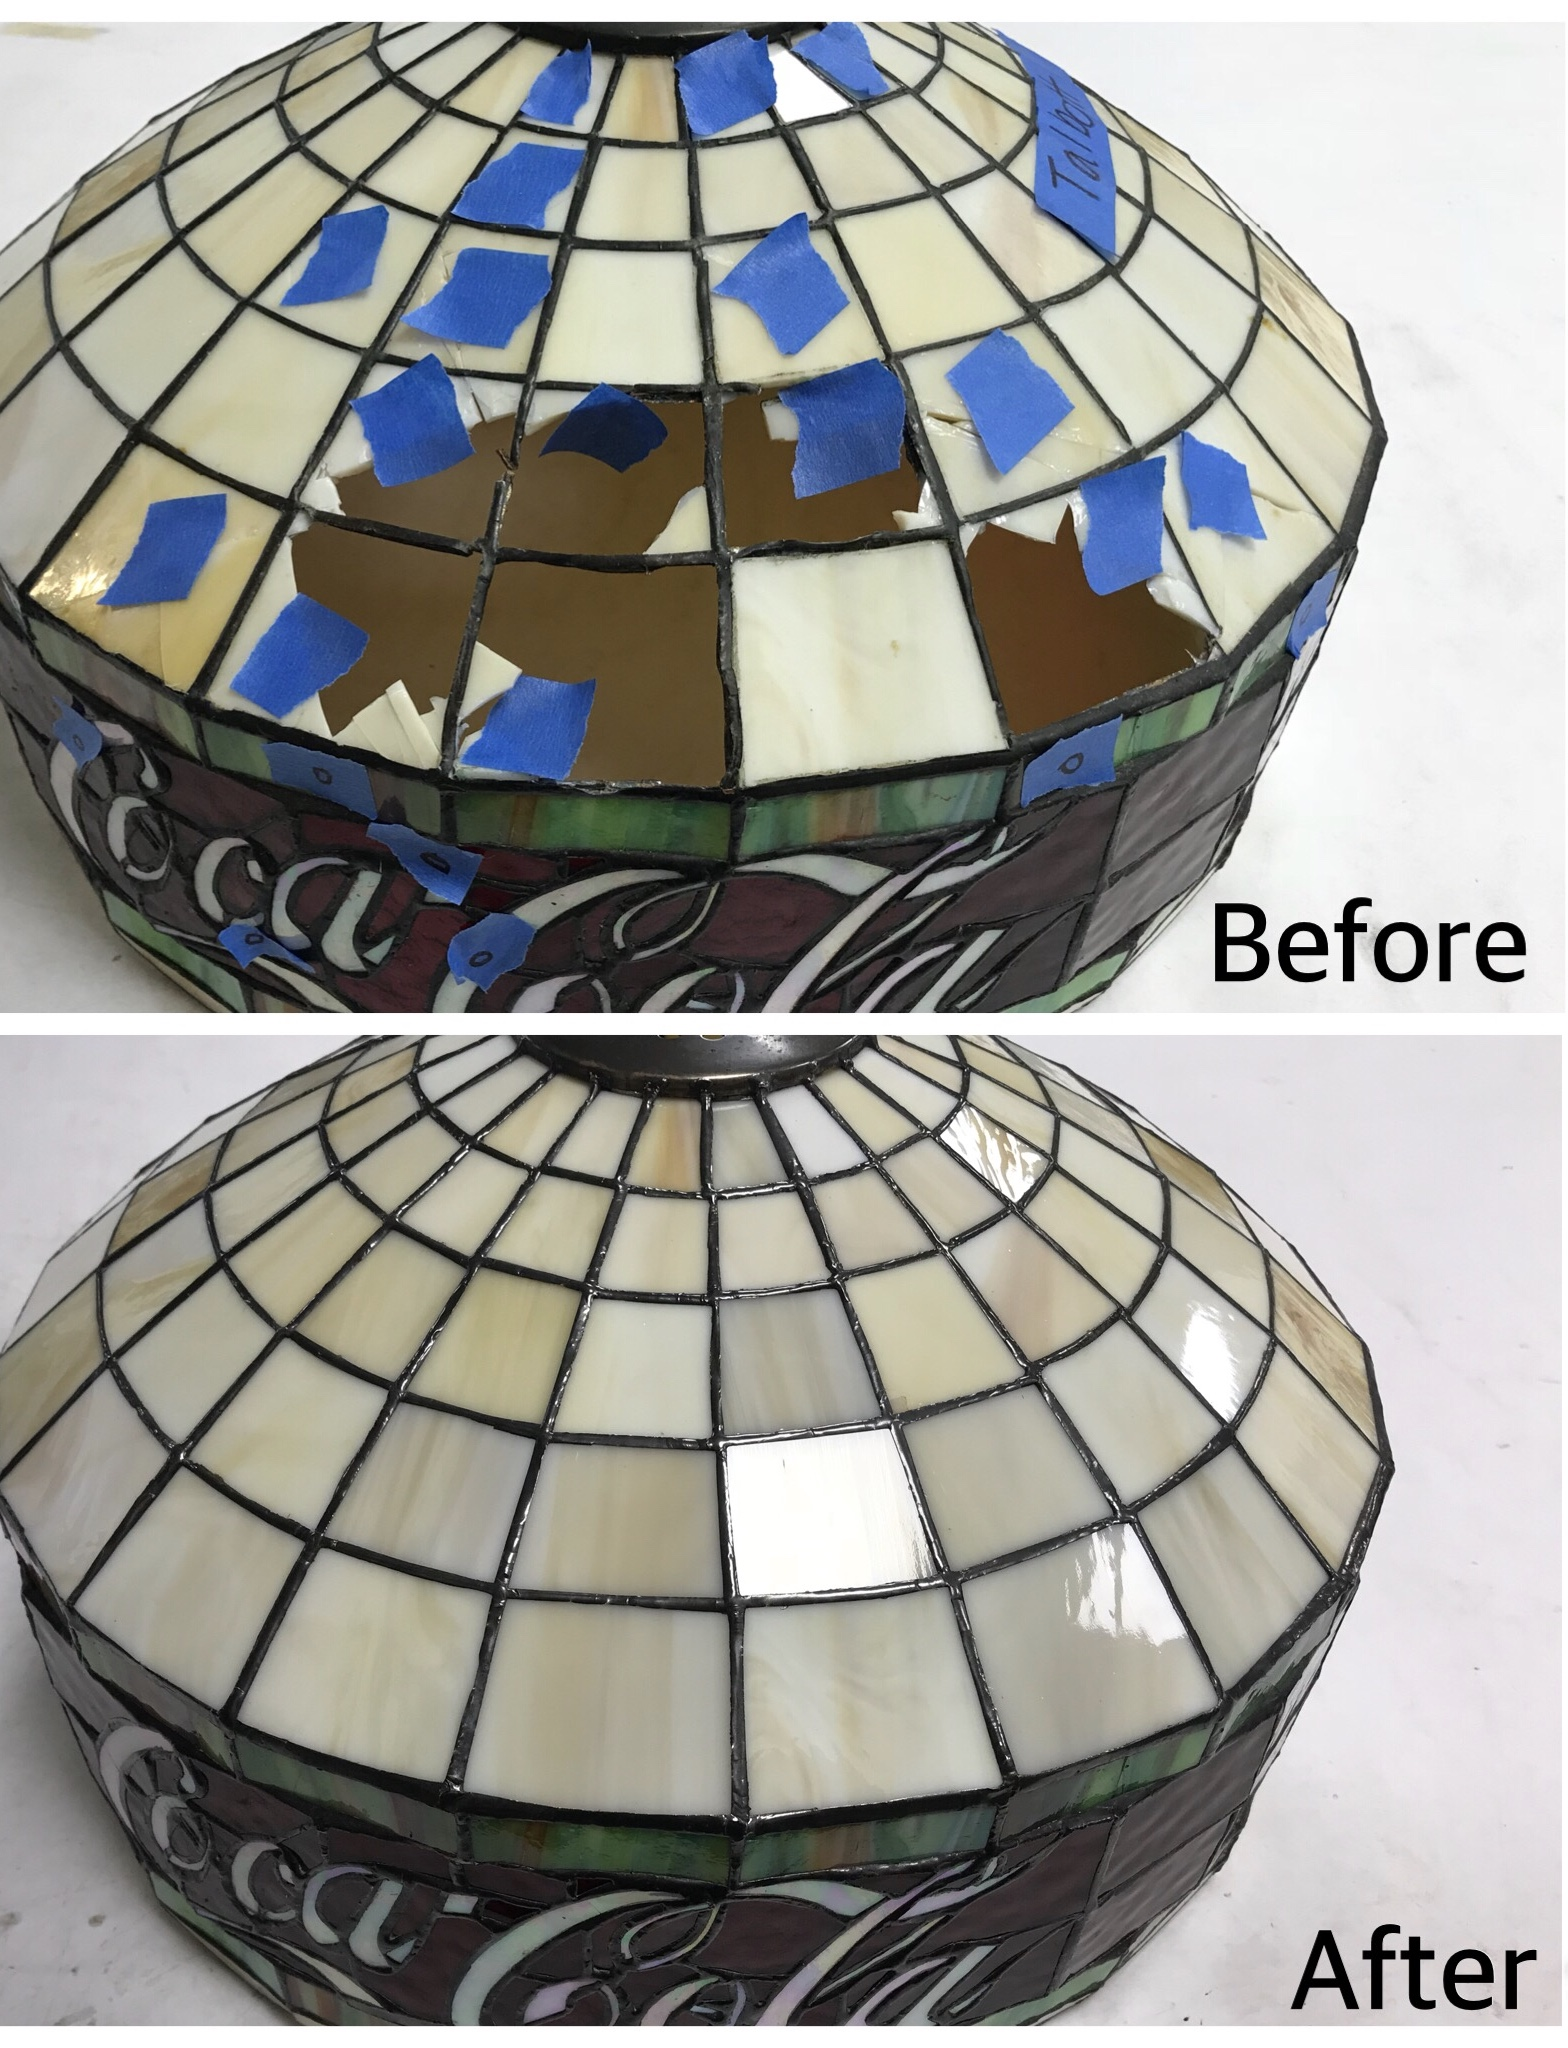 stained glass coca-cola lampshade repair before and after legacy glass studios california.jpg